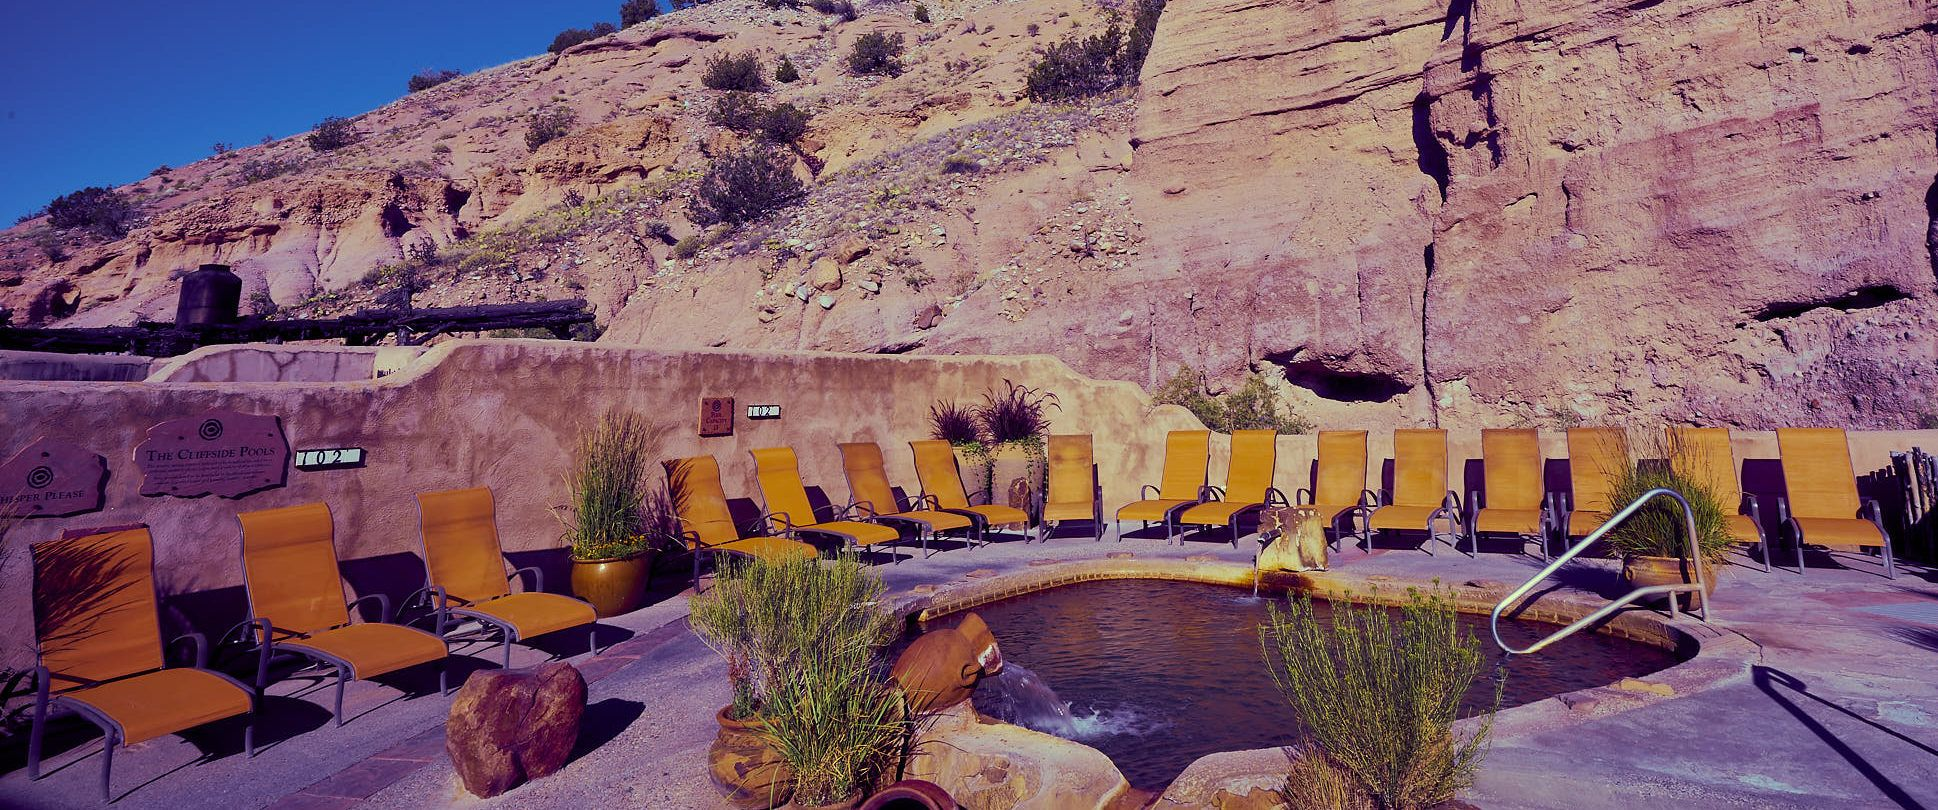 Rose Glen North Dakota ⁓ Try These All Inclusive Spa Resorts